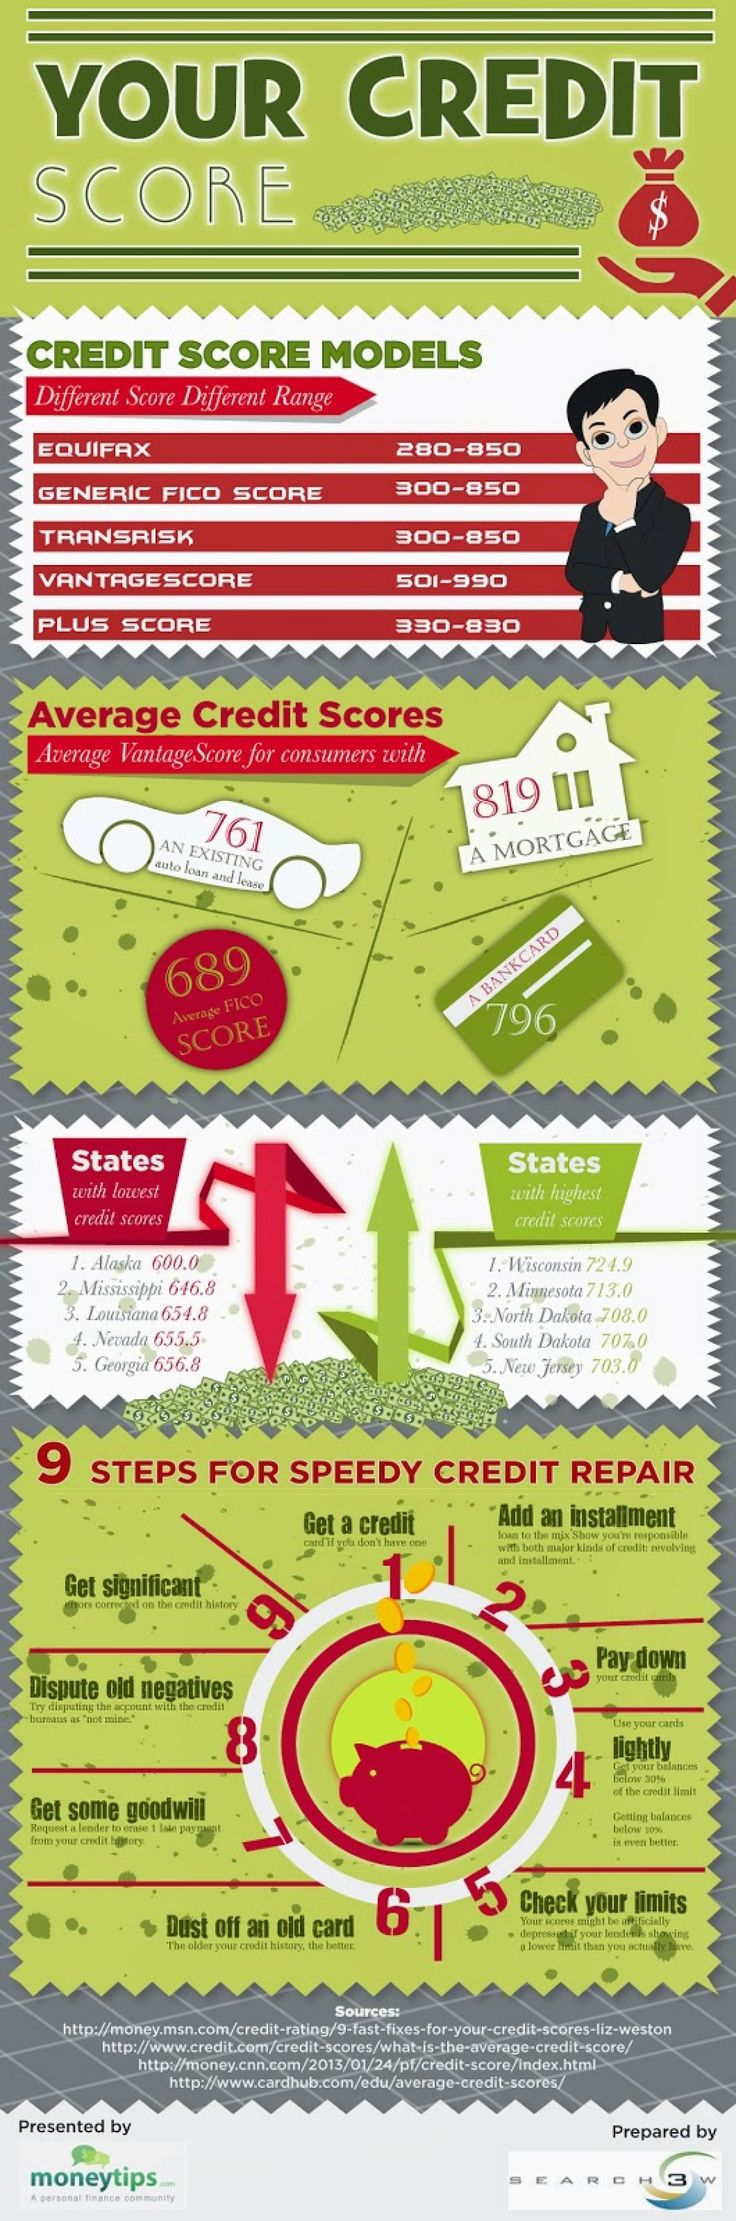 This infographic will help people improve their credit scores. This will be achieved by giving information about different types of credit scores models and giving tips to improve credit ratings -shared by moneytips | published Jan 31, 2014